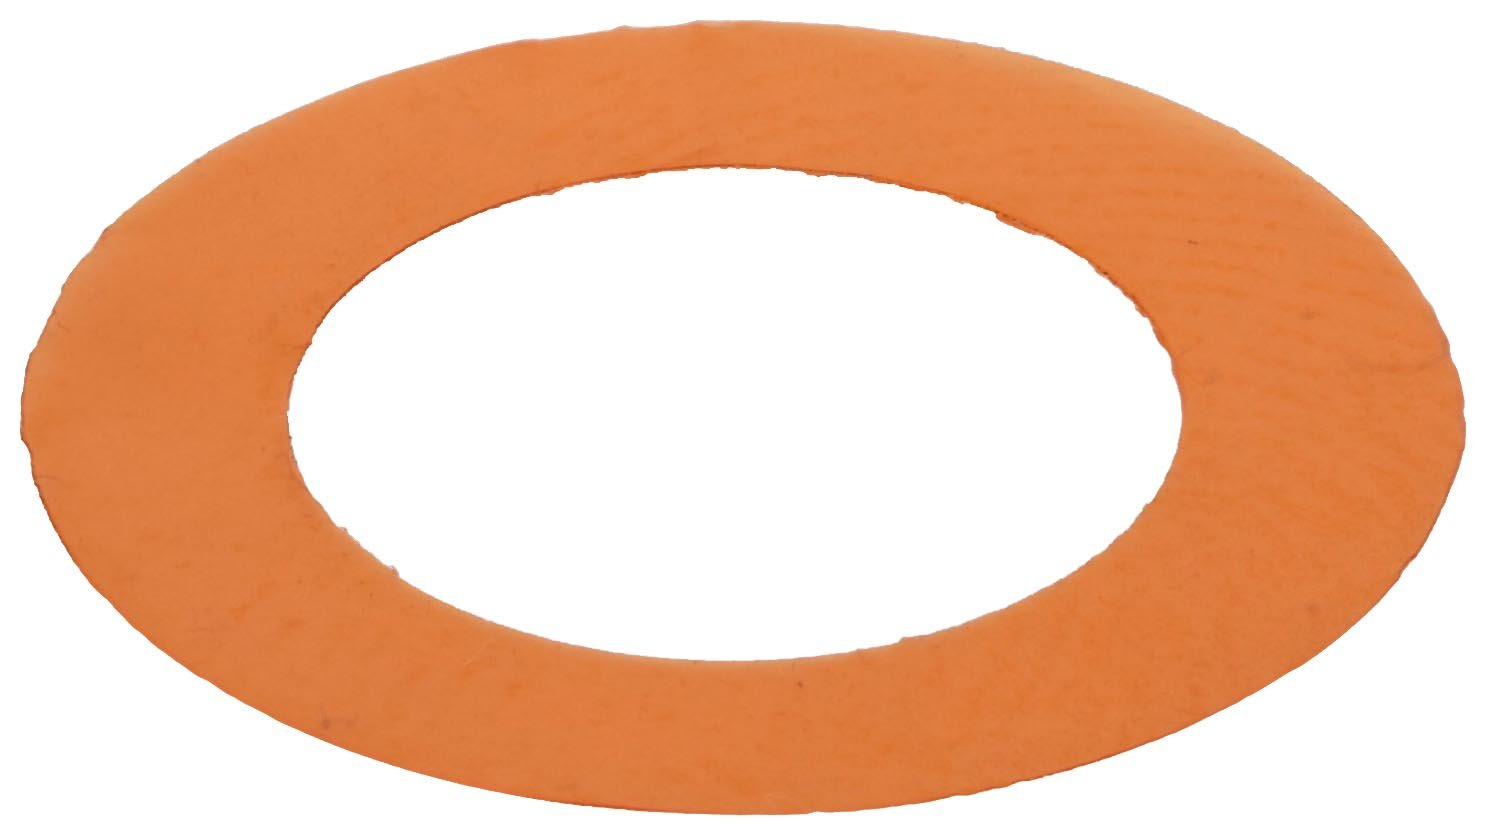 Polyester Round Shim, Amber, 0.001'' Thickness, 3/8'' ID, 5/8'' OD (Pack of 10) by Small Parts